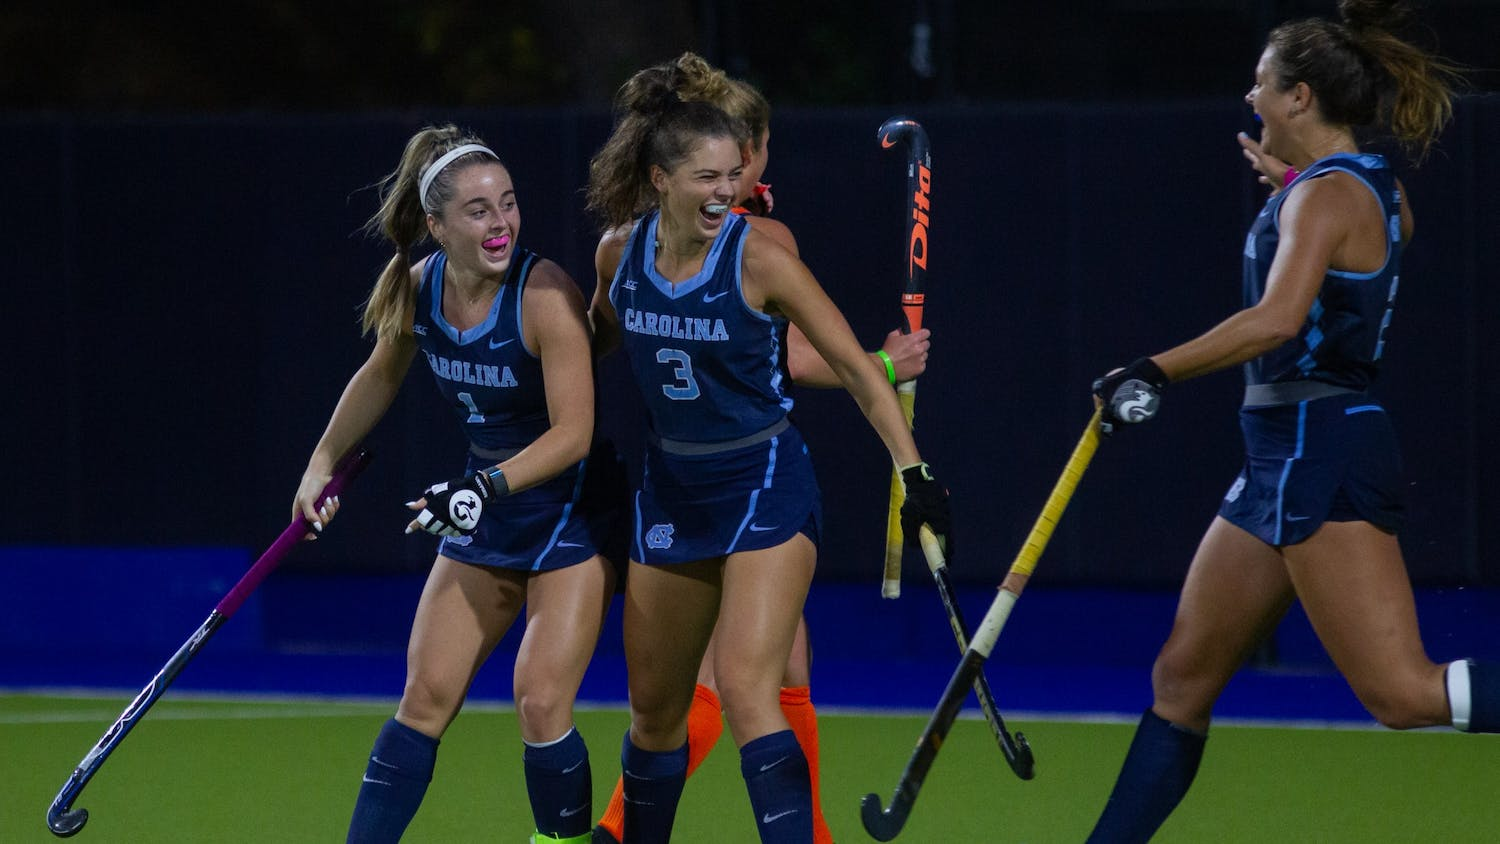 Members of the UNC Field Hockey team celebrate after junior forward Erin Matson (1) scores the second goal of the game against Syracuse. The Tar Heels won the ACC Semifinals with a 4-3 score on Friday, Nov. 6, 2020.